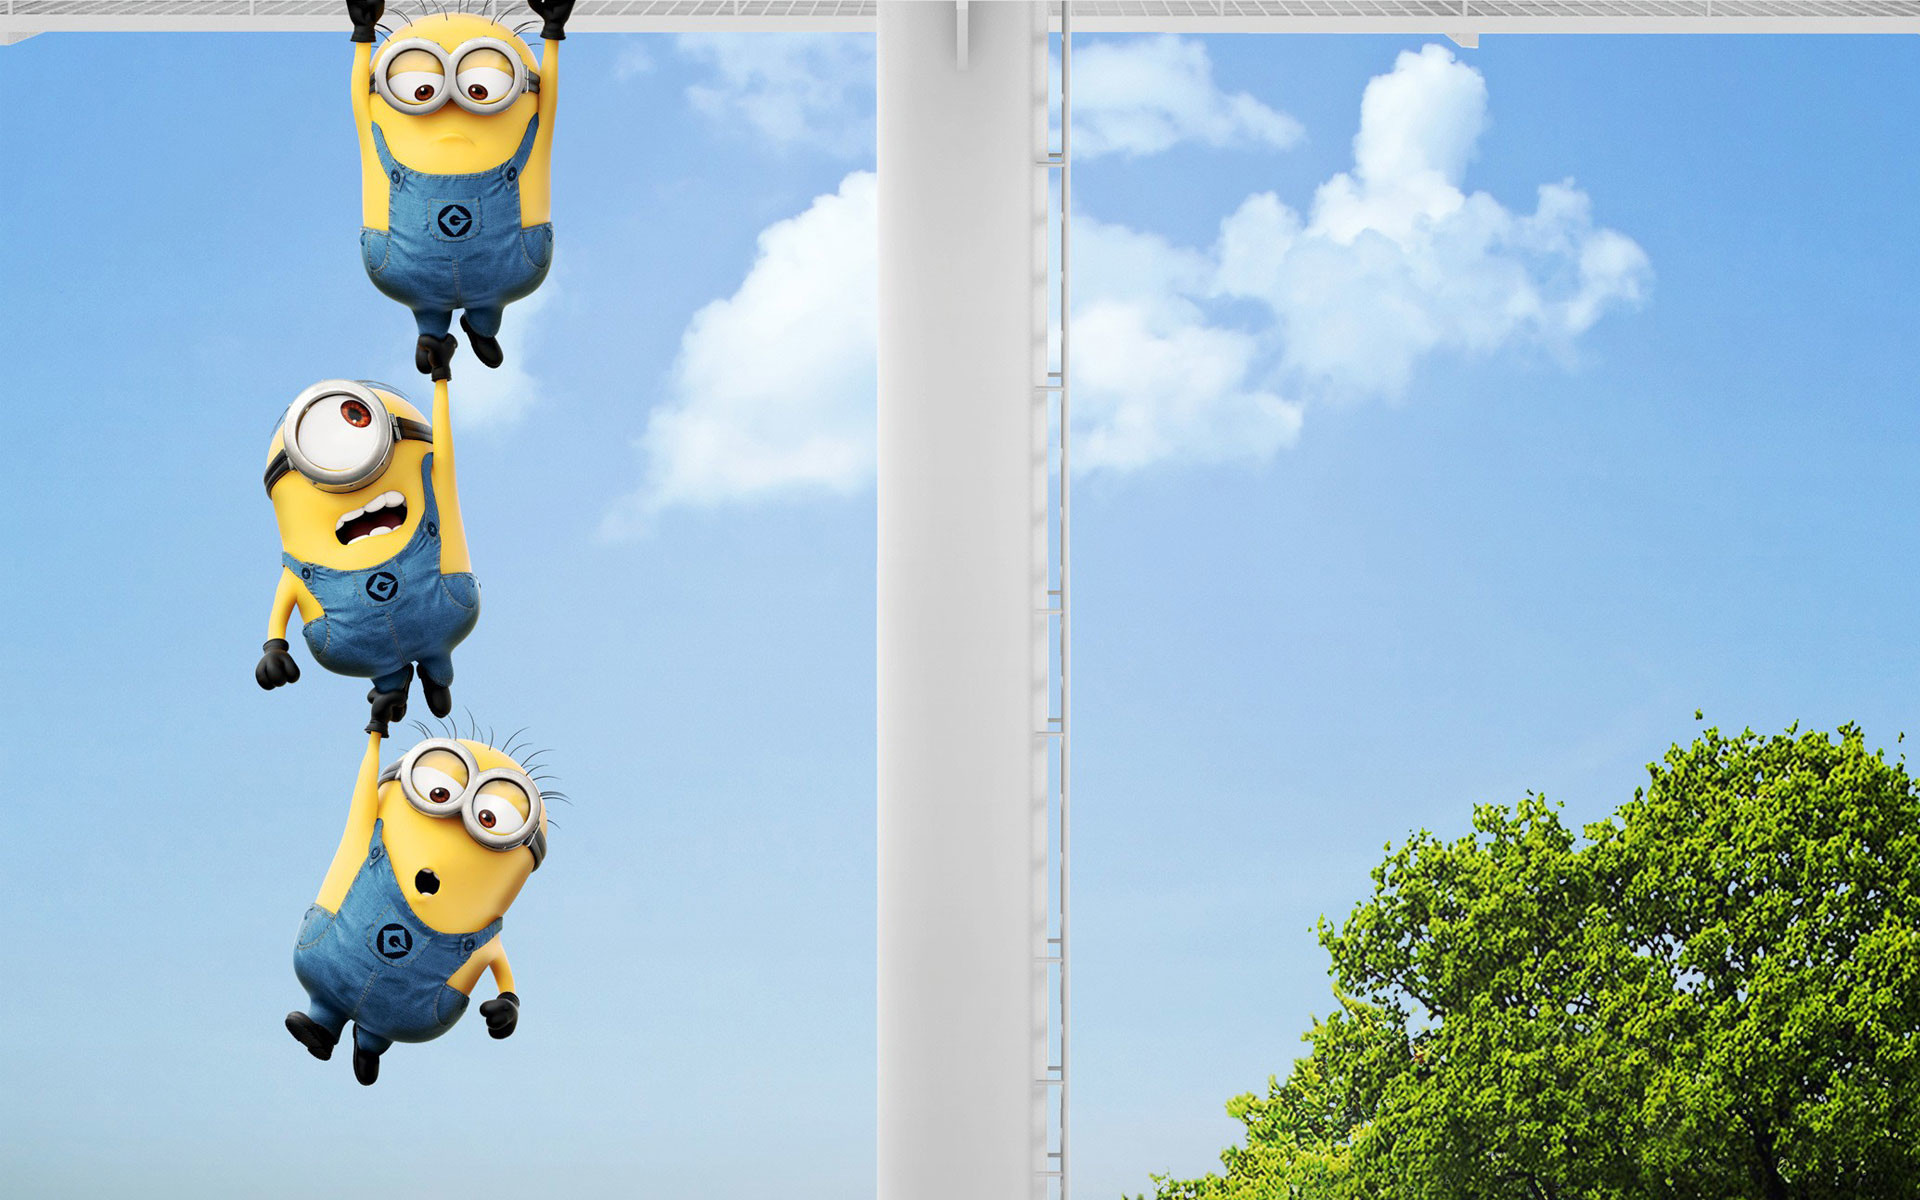 1920x1200 Minions Despicable Me 2 Desktop Wallpapers & Backgrounds